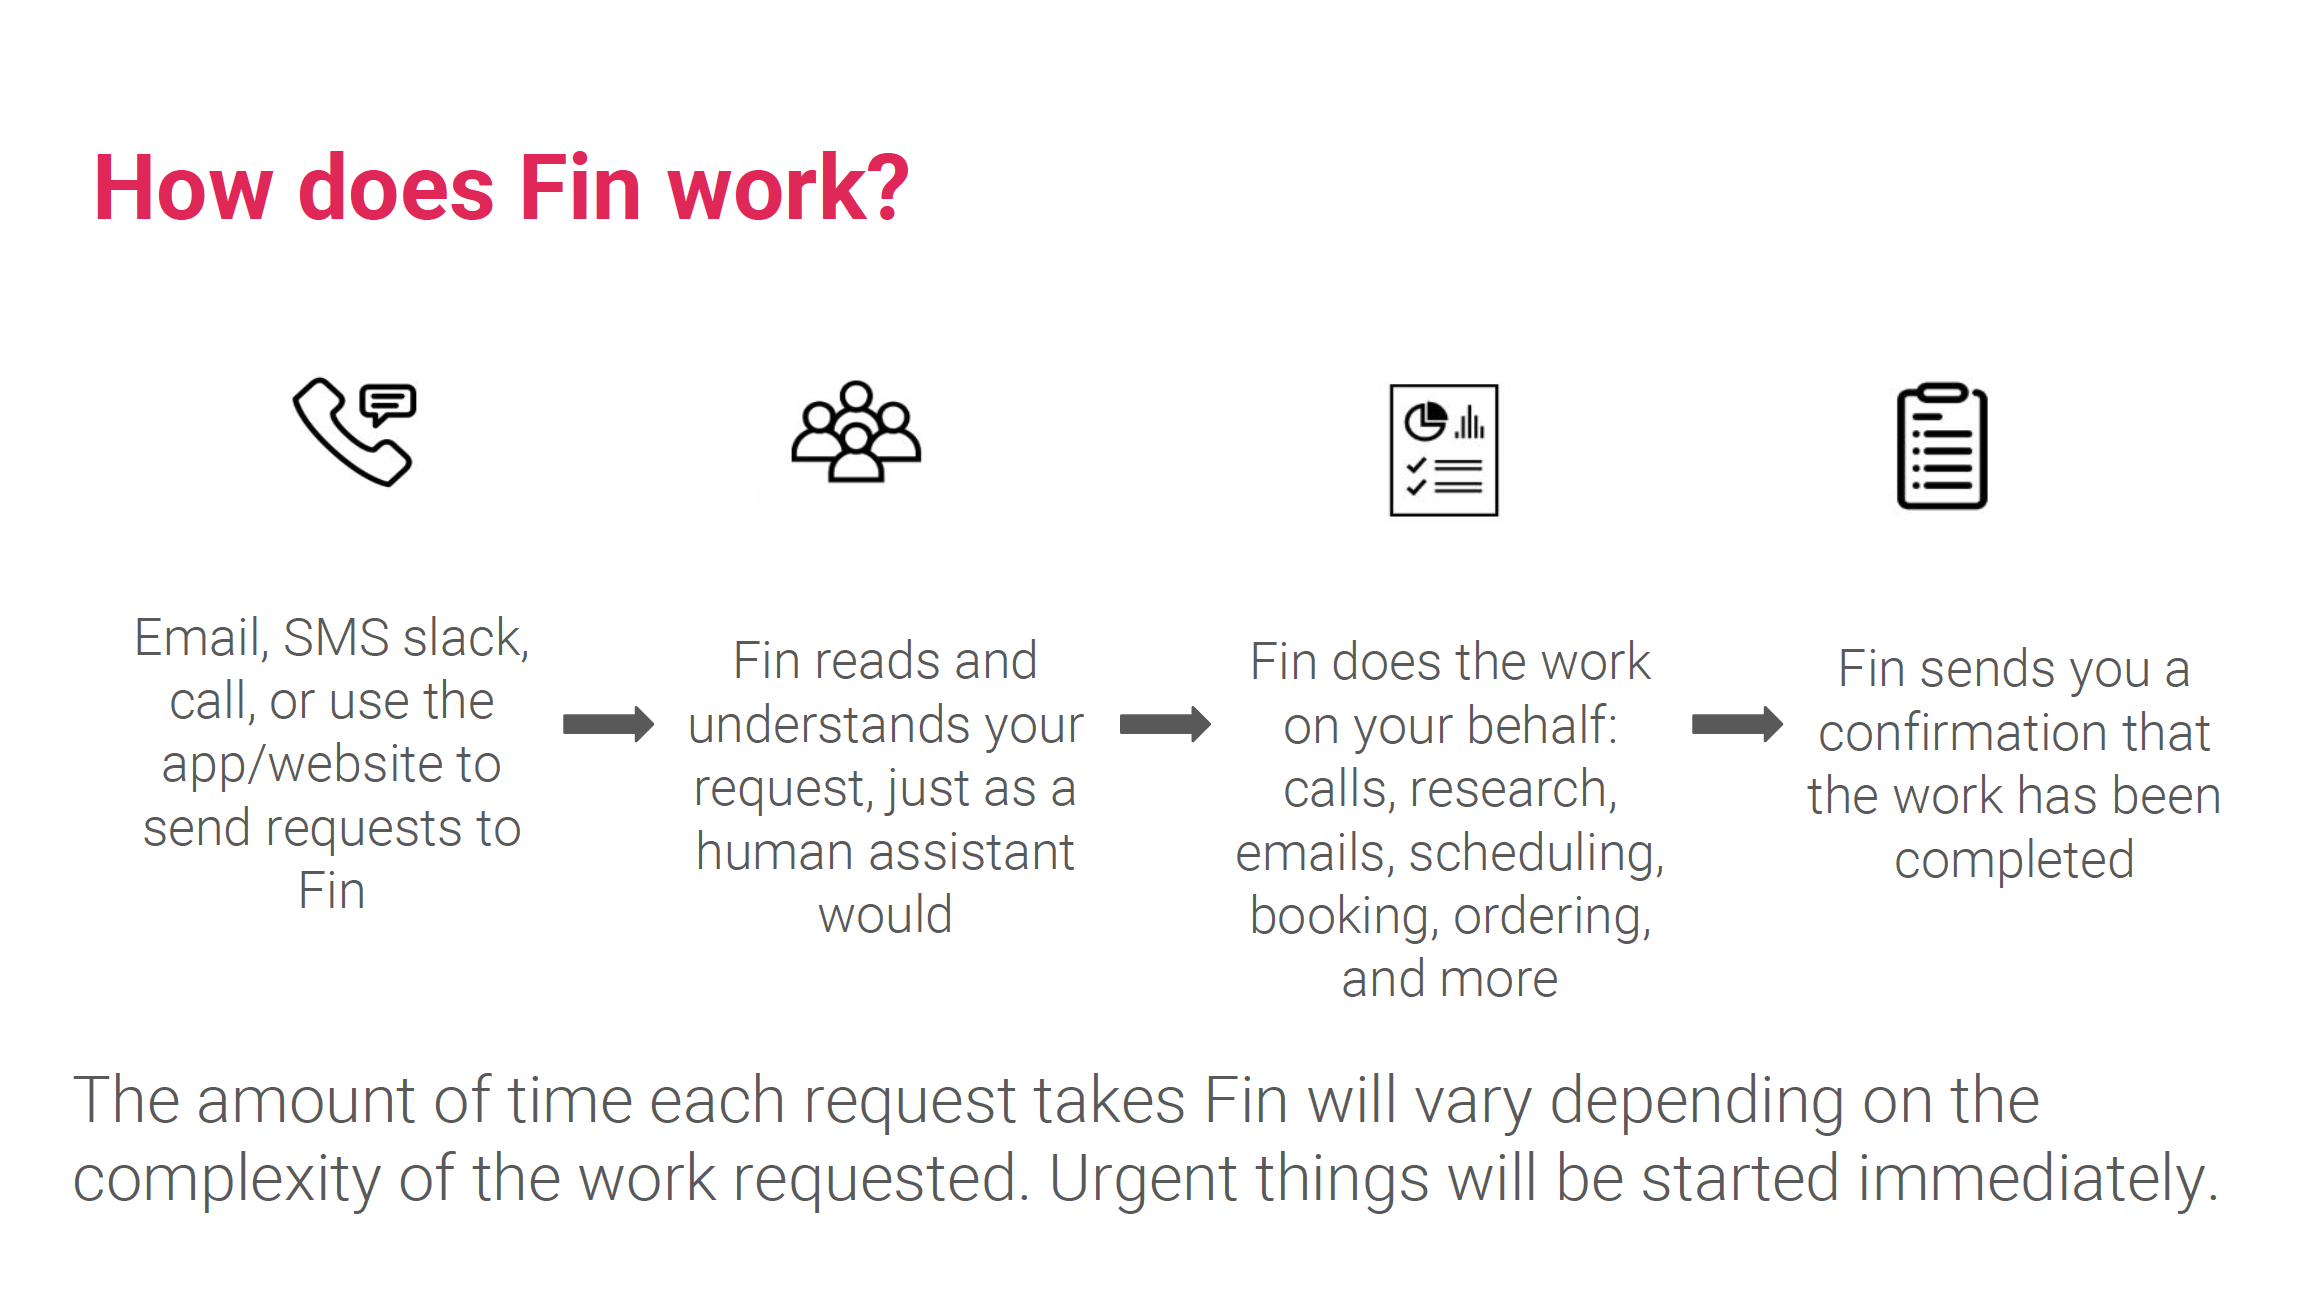 How Does Fin Work?